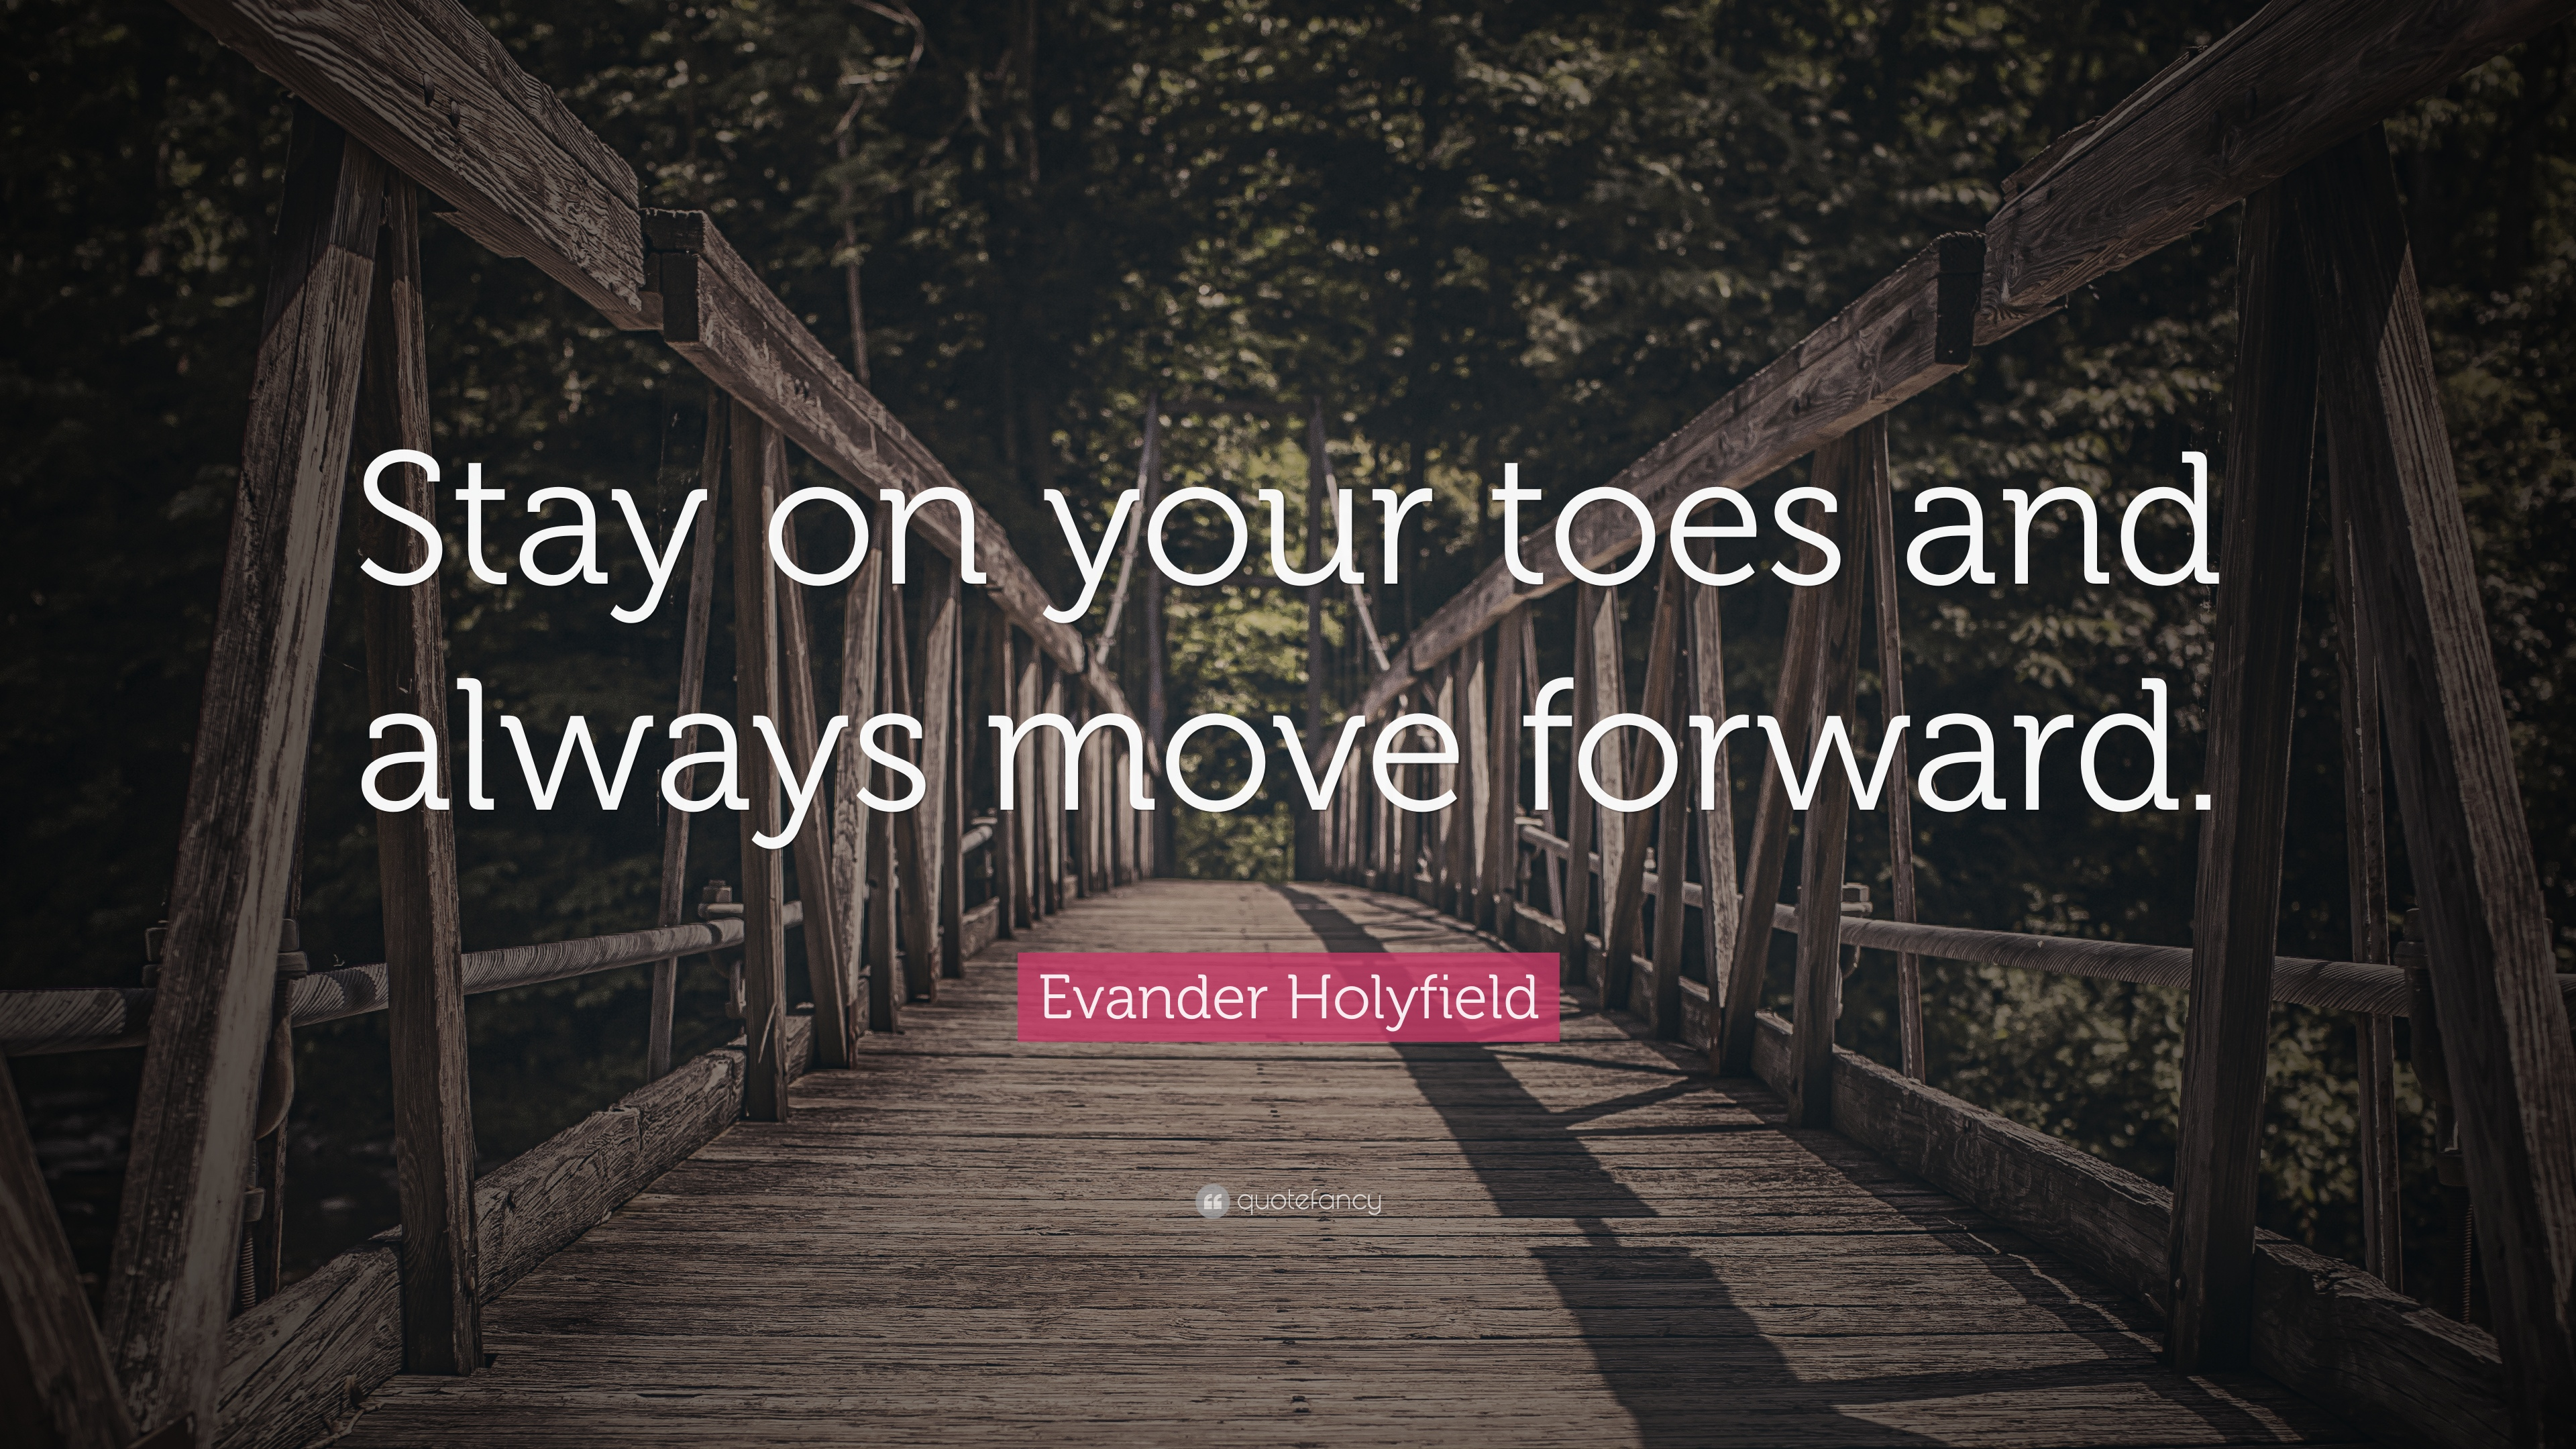 1918089-Evander-Holyfield-Quote-Stay-on-your-toes-and-always-move-forward.jpg